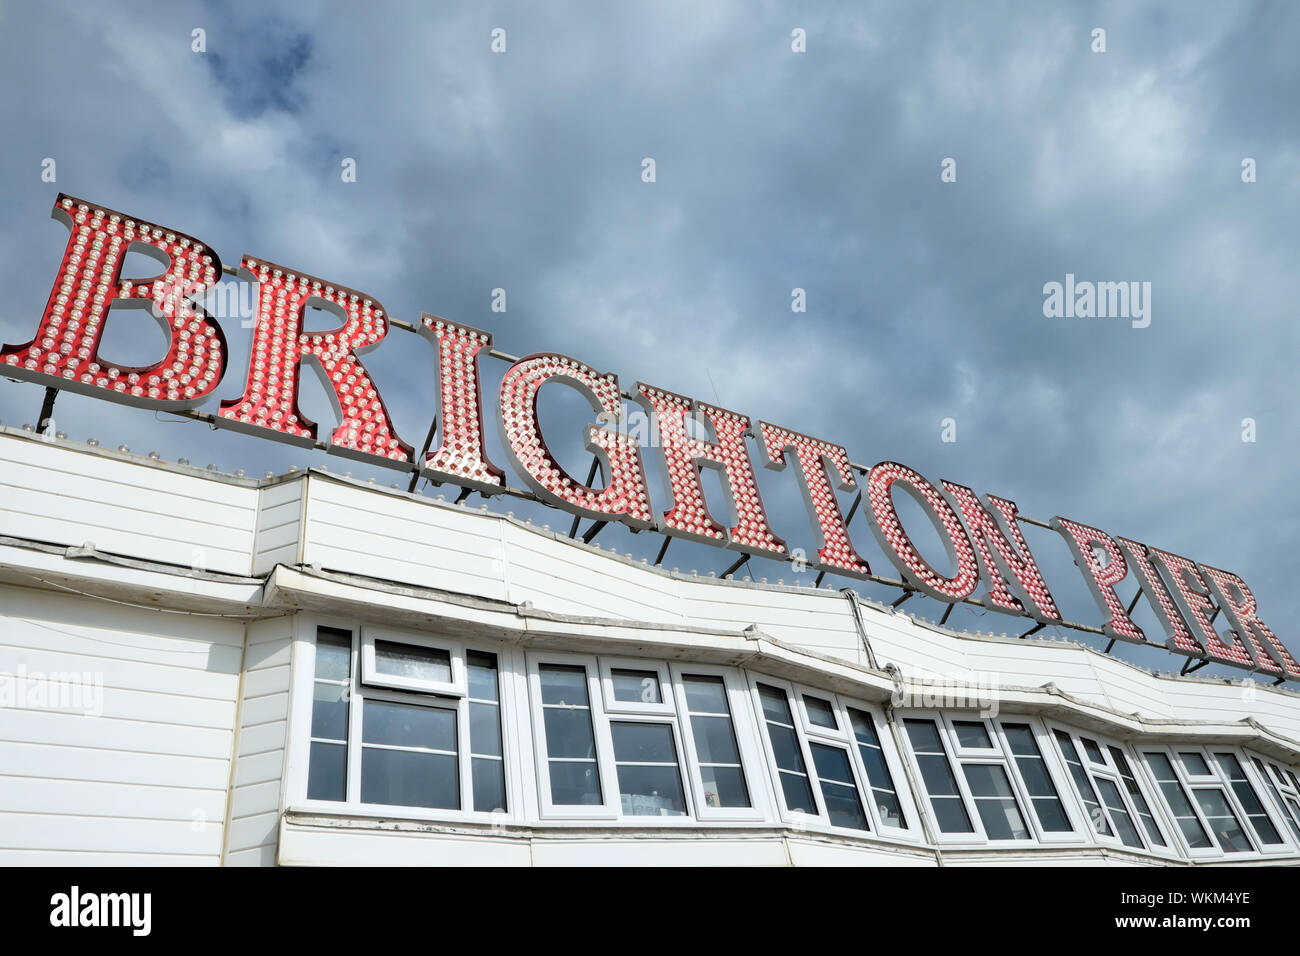 Low angle view of the Brighton Palace Pier signer dans l'East Sussex England UK KATHY DEWITT Banque D'Images